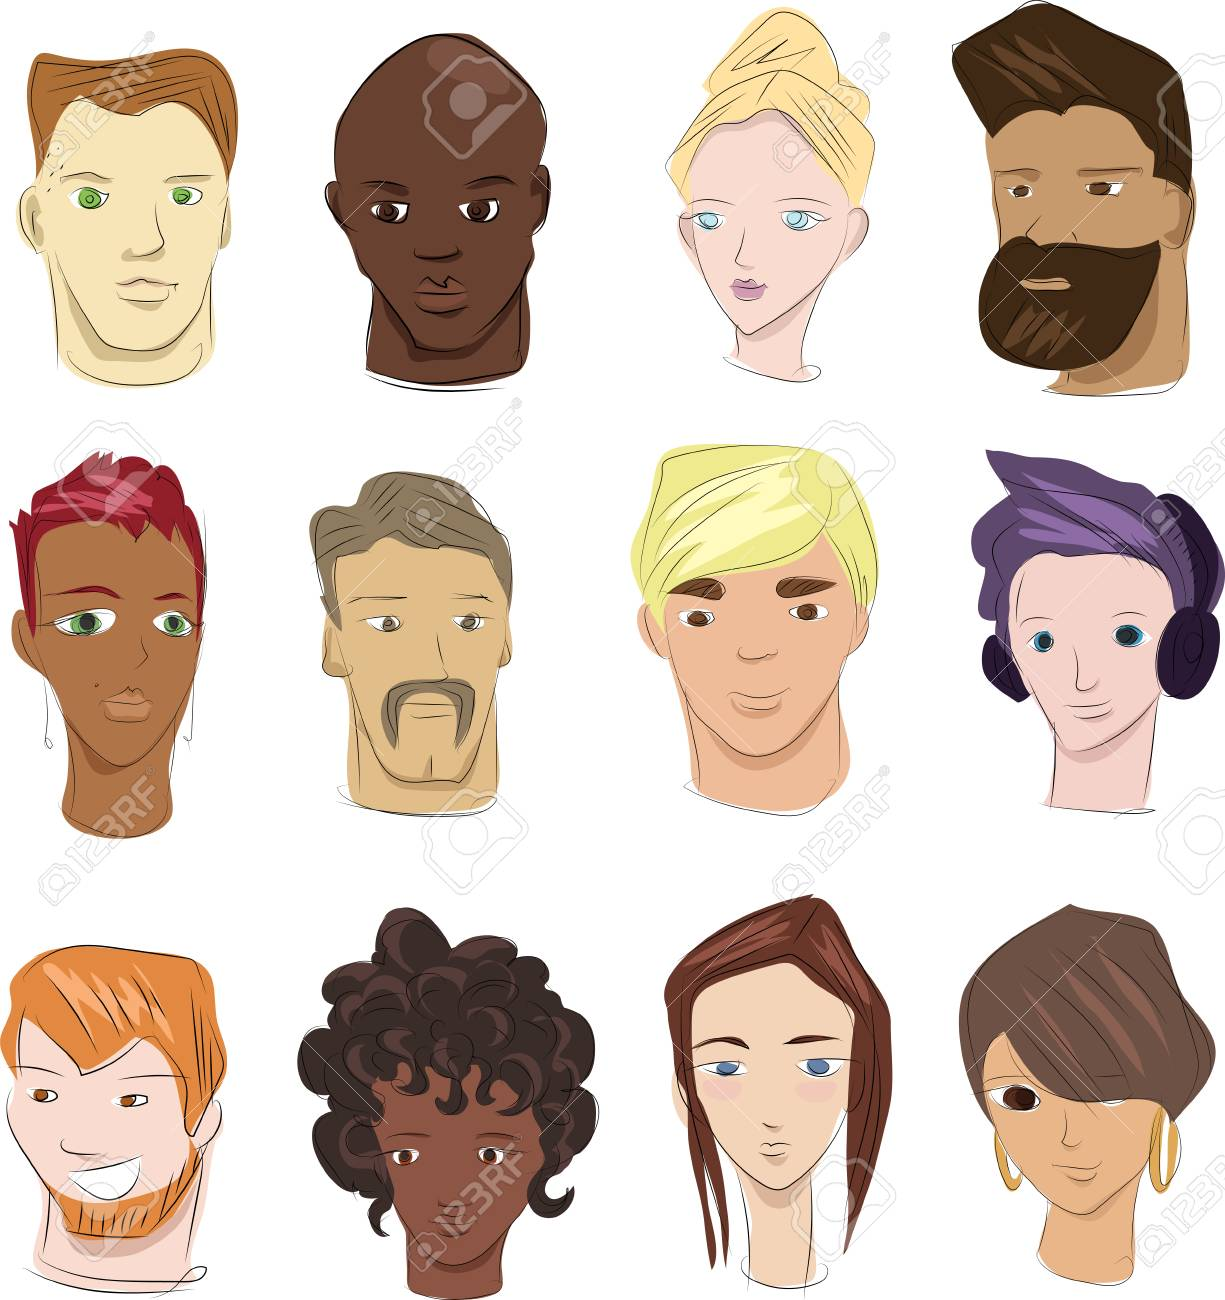 sketches of human faces in color royalty free cliparts vectors and